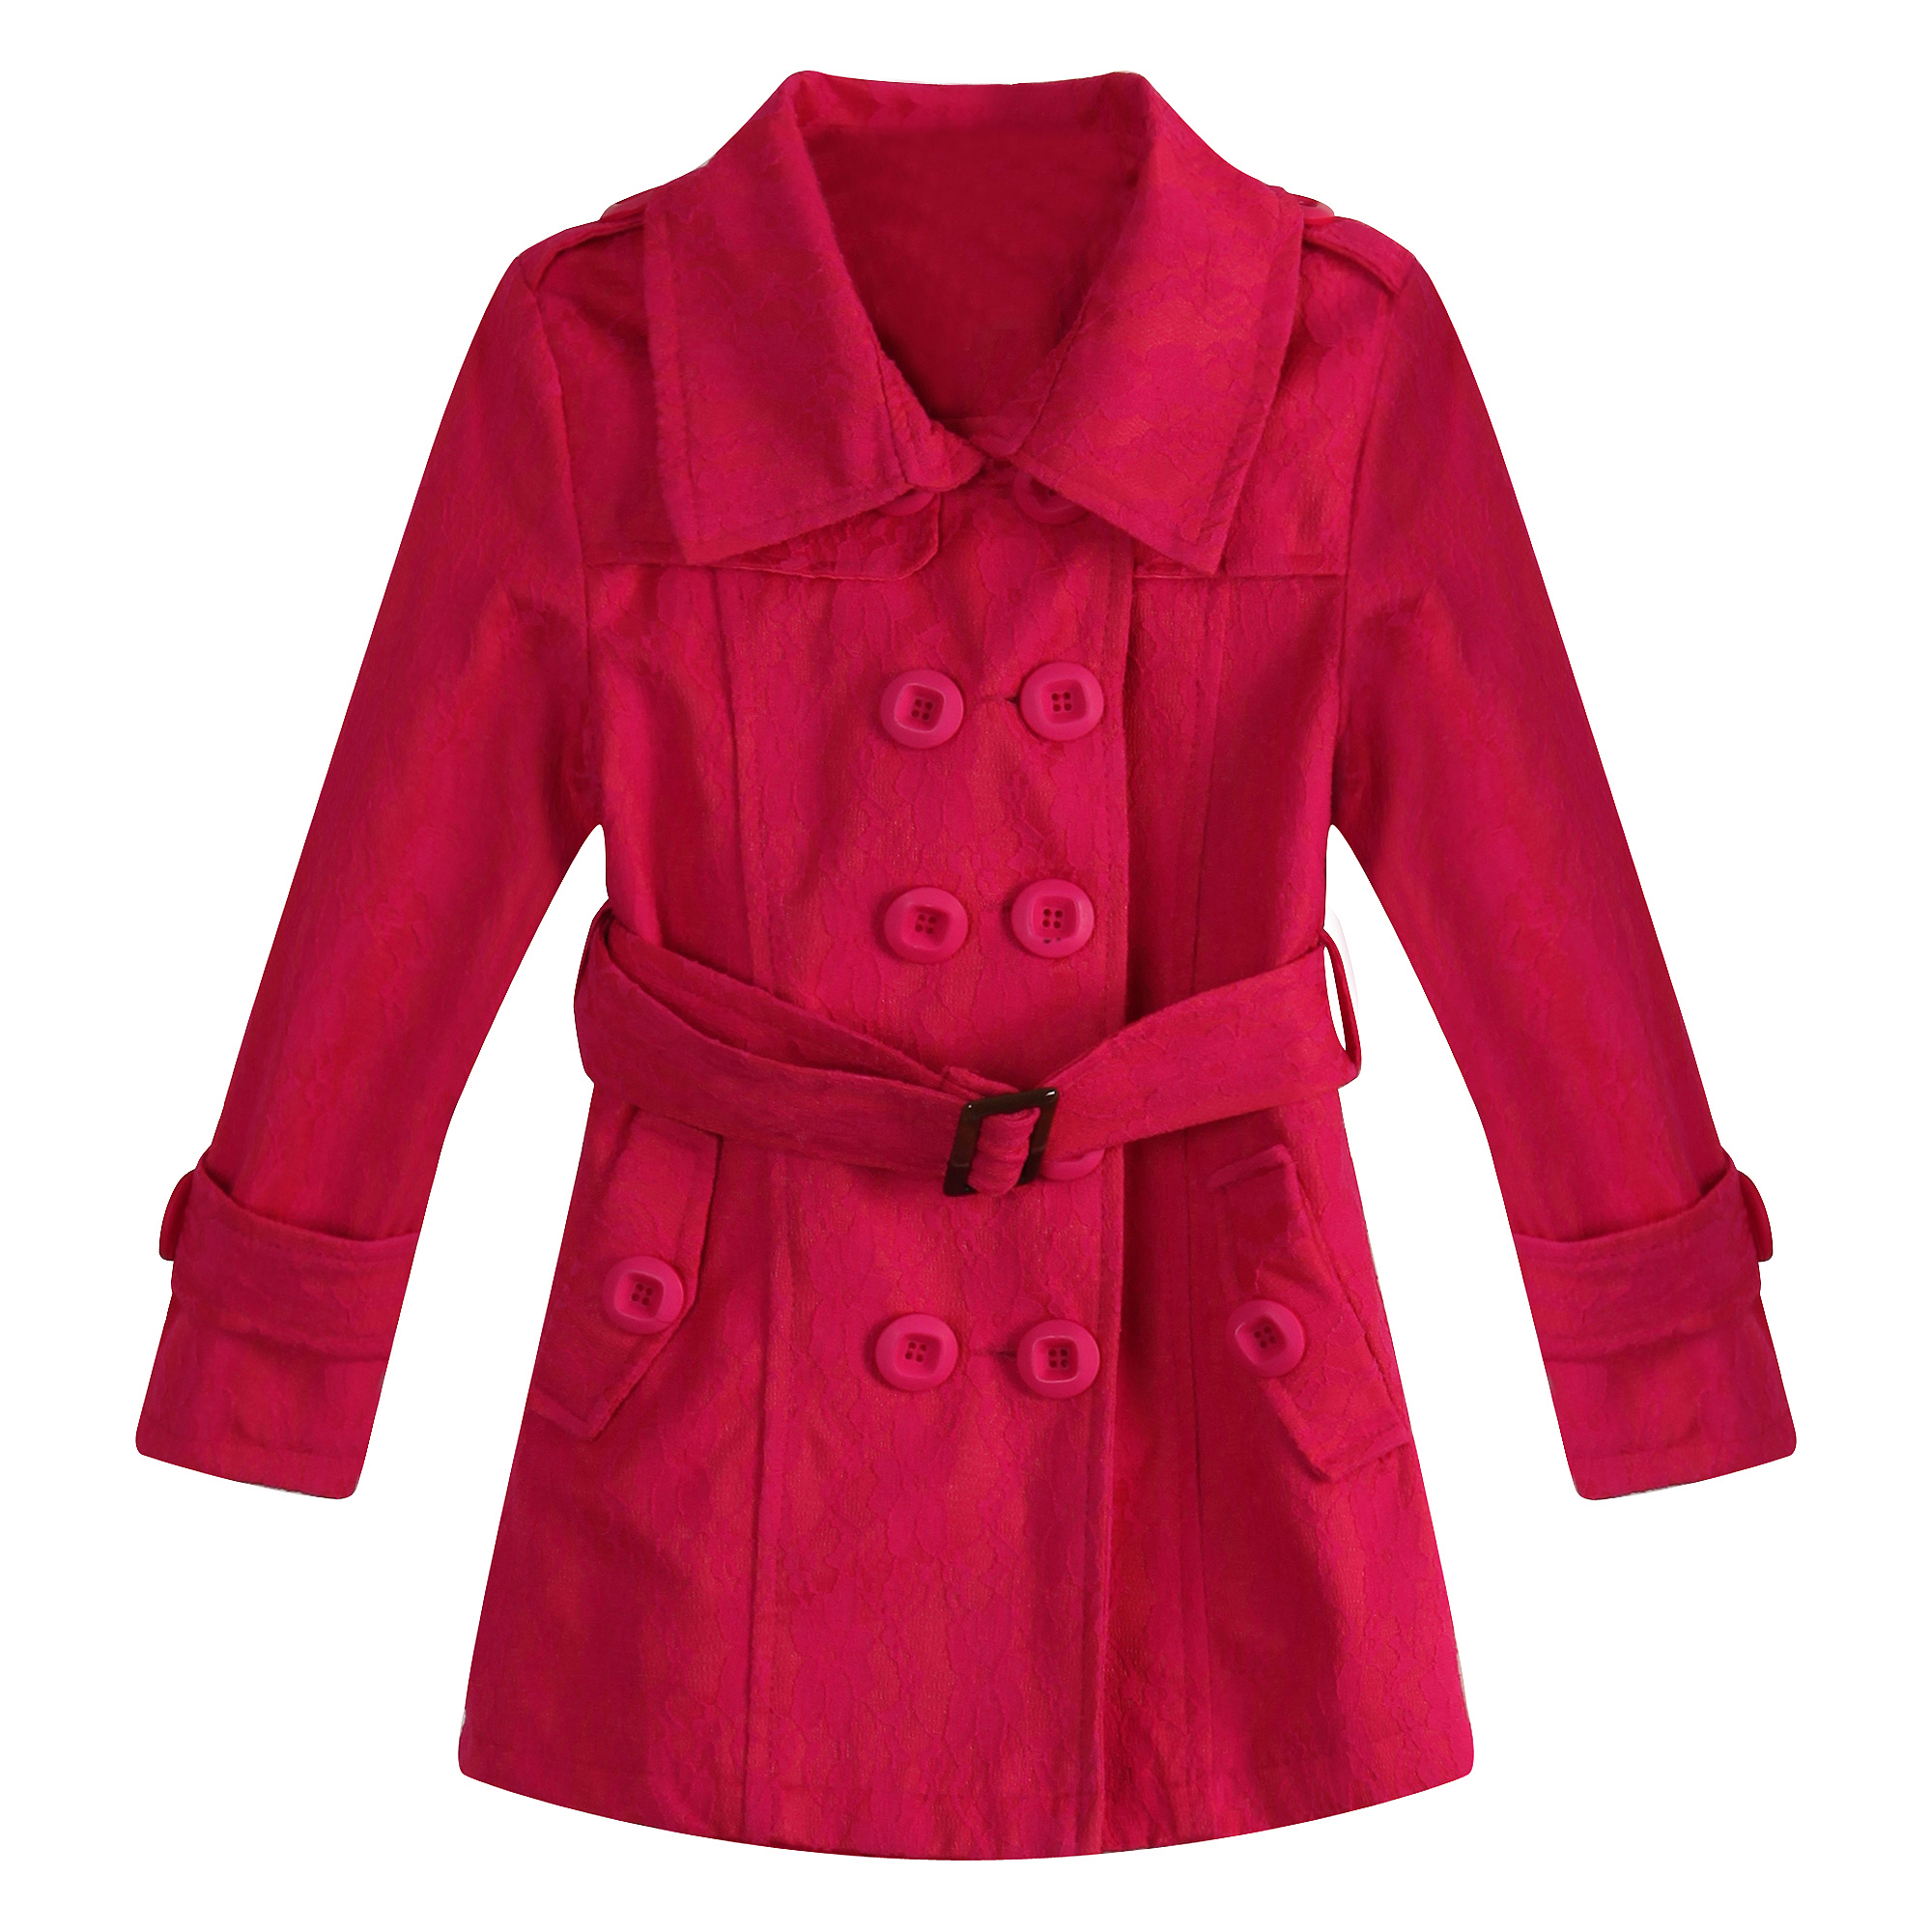 Richie House Little Girls Rose Buckle Belt Long Coat 4